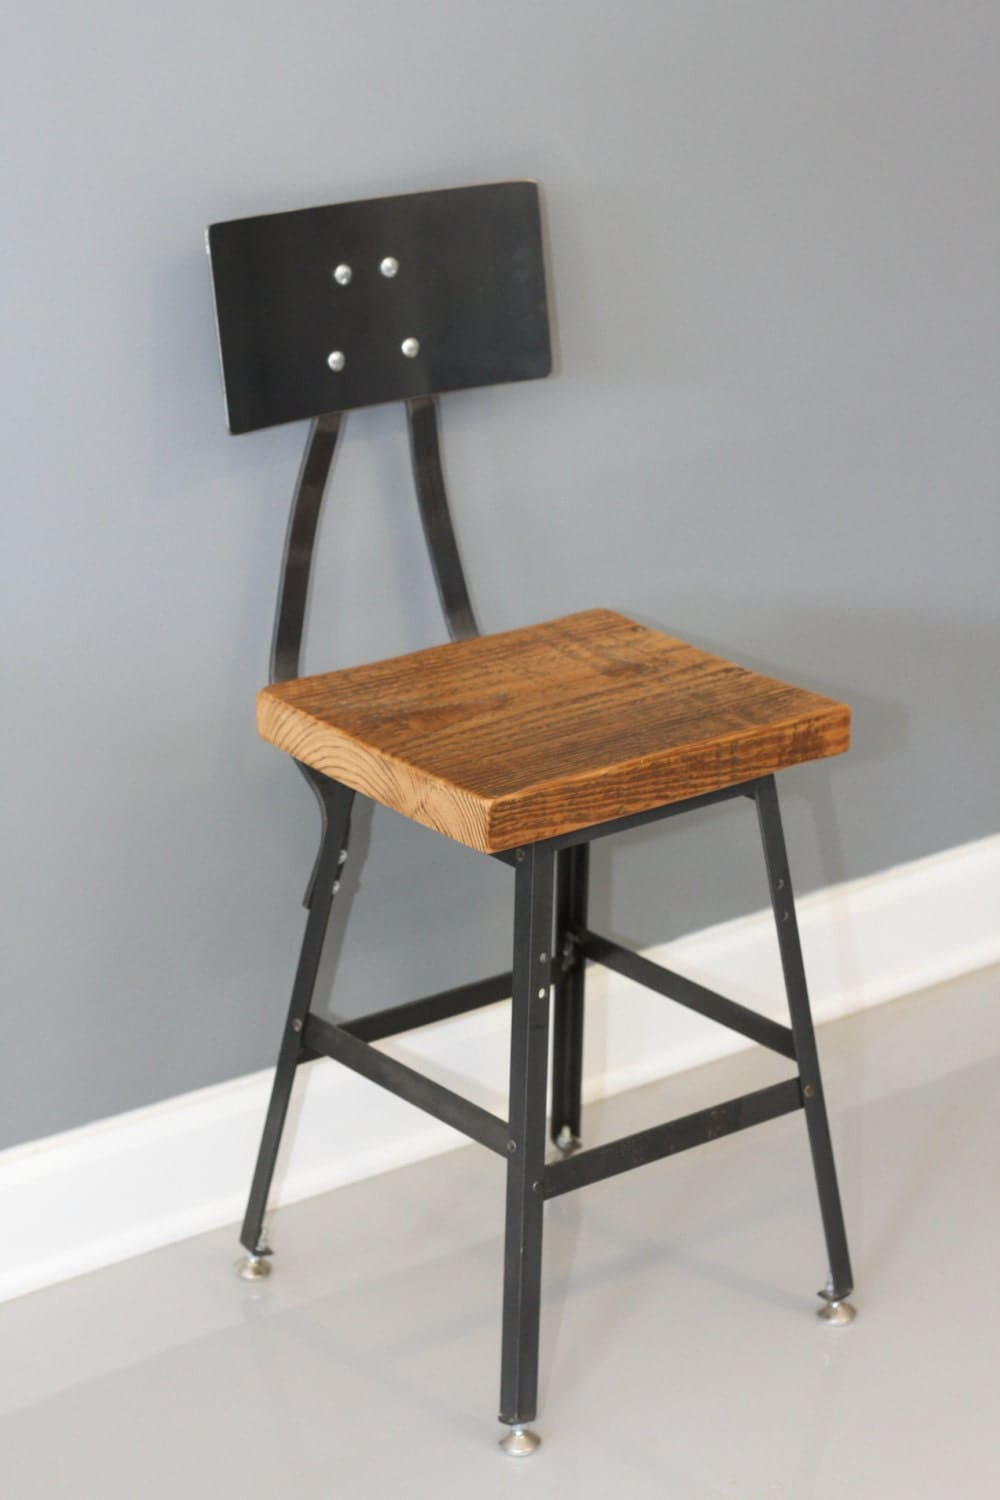 Shop Stool Chair Industrial Barstool With Back By Dendroco On Etsy